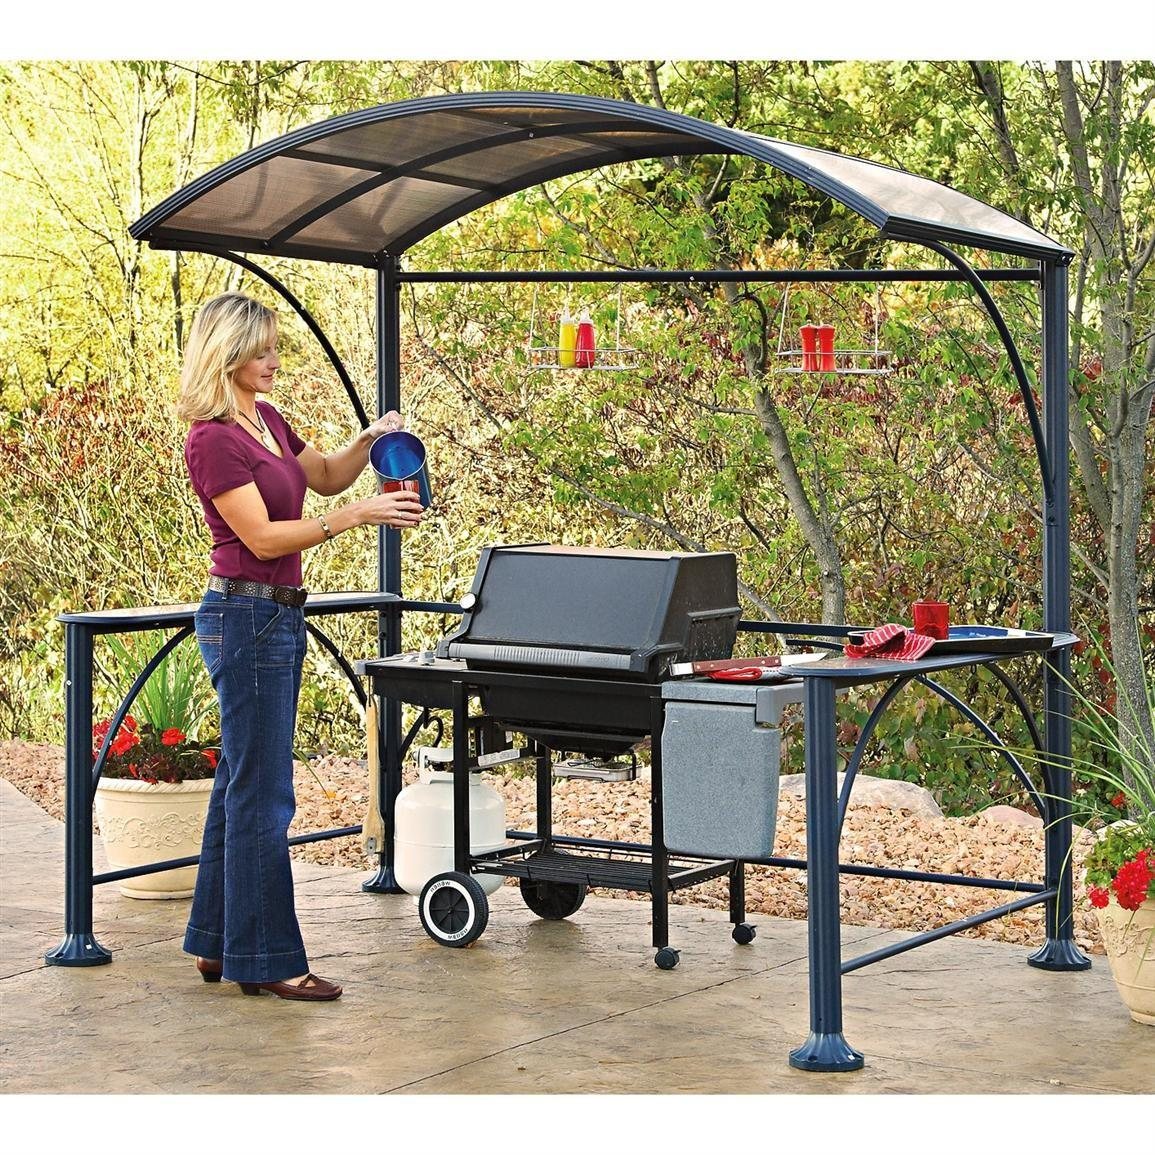 Guide Gear Backyard Grill Gazebo Gazebos